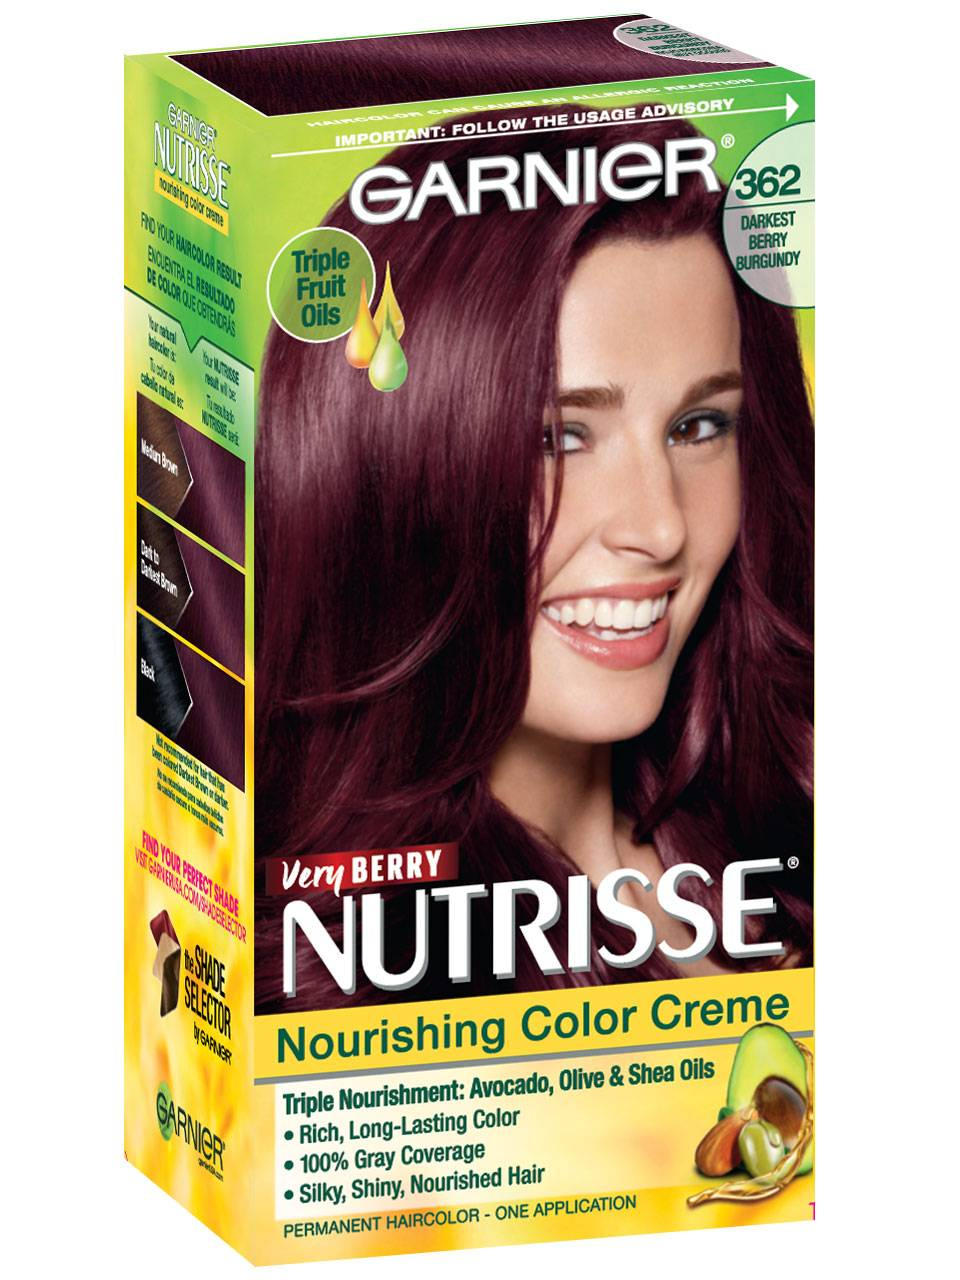 nutrisse cream box angled view